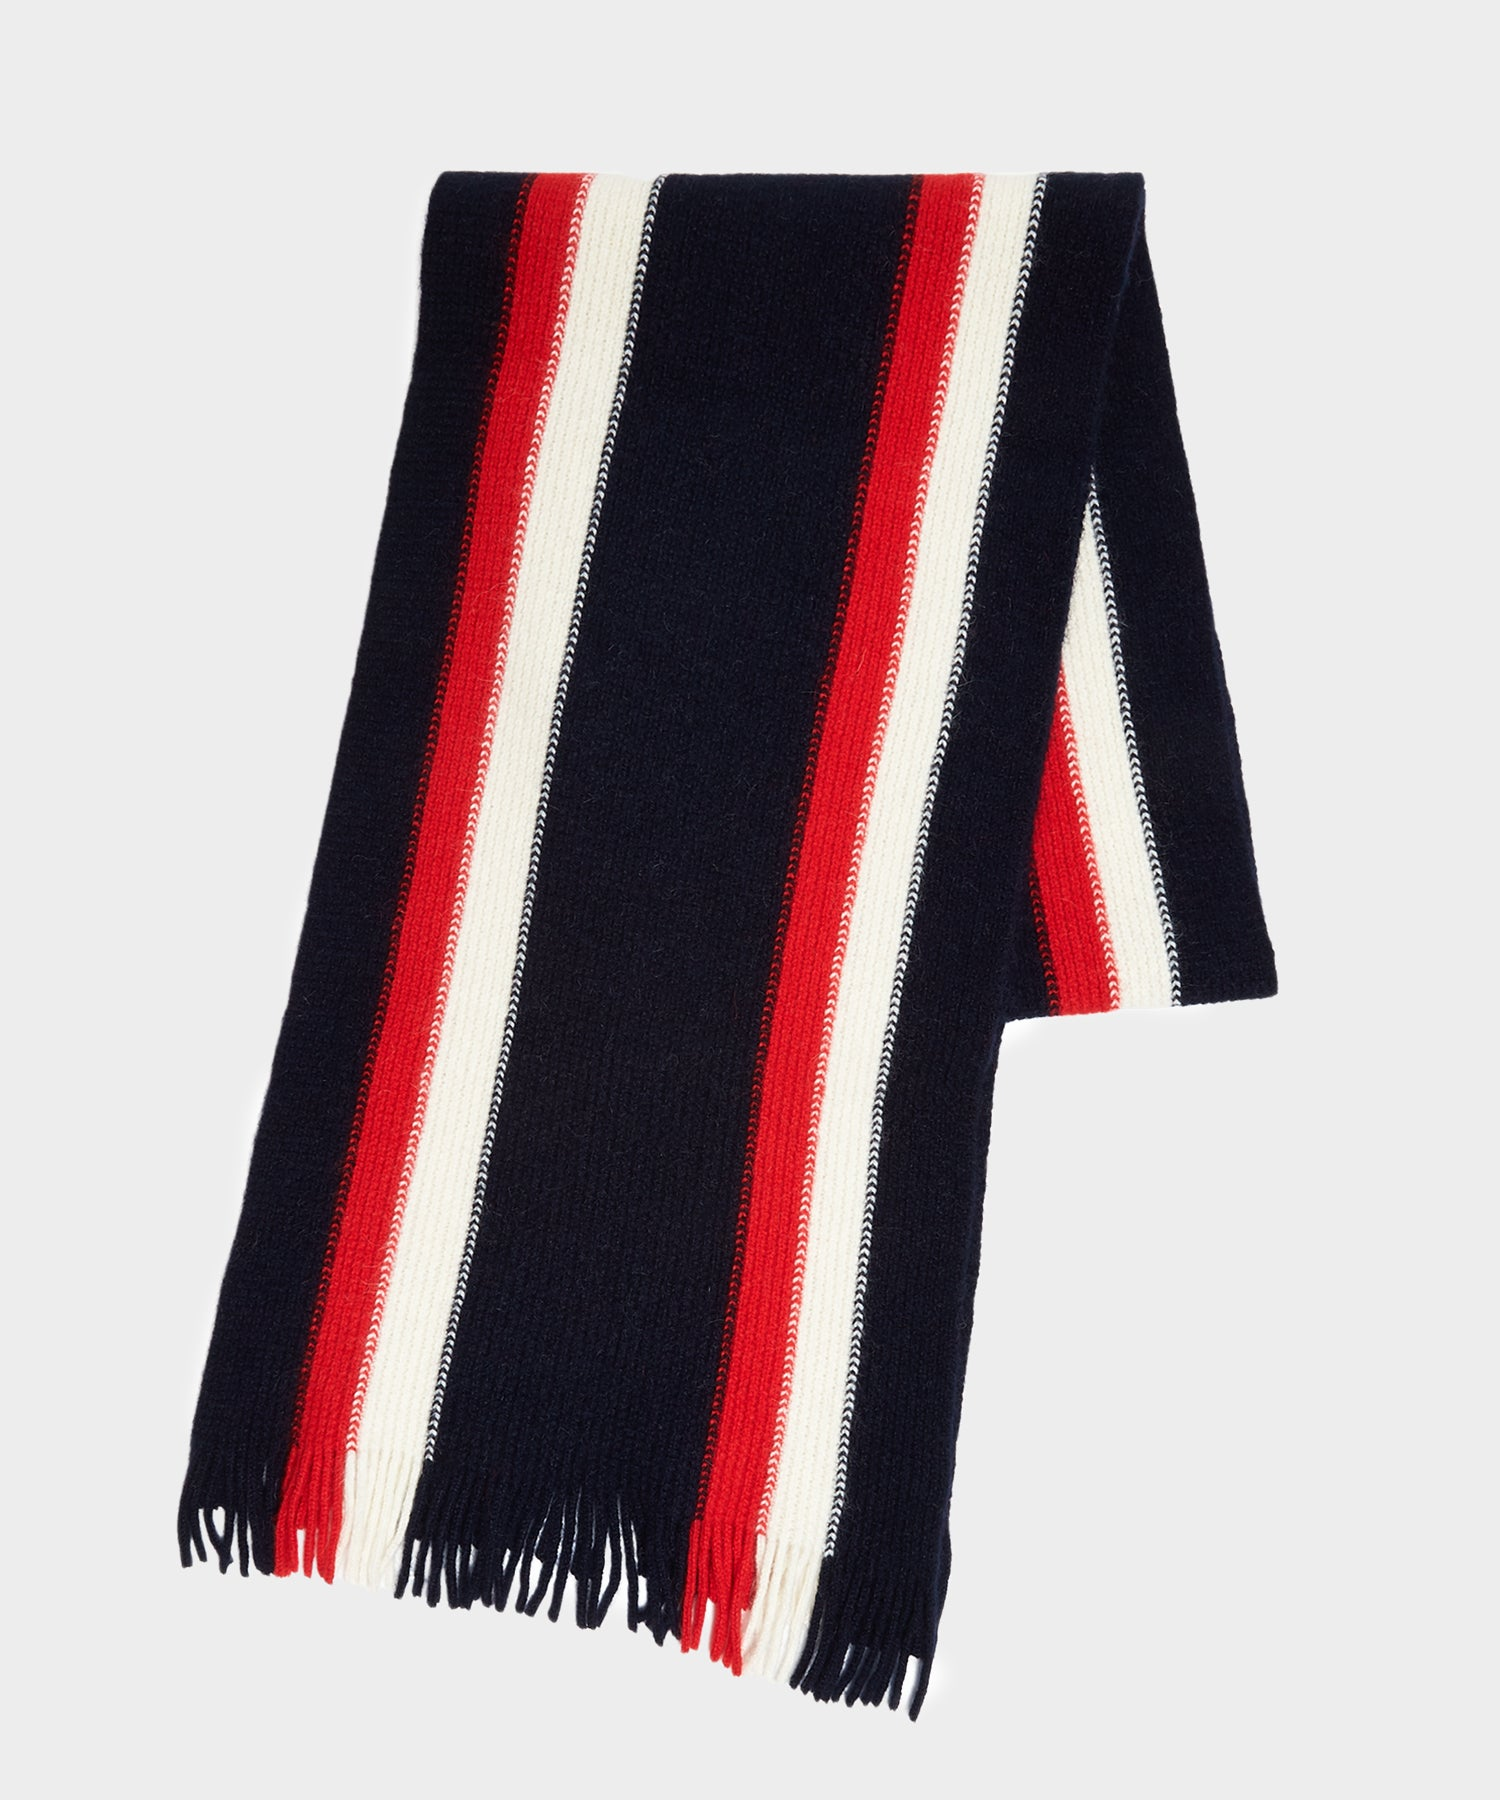 Drake's Collegiate Striped Scarf in Navy